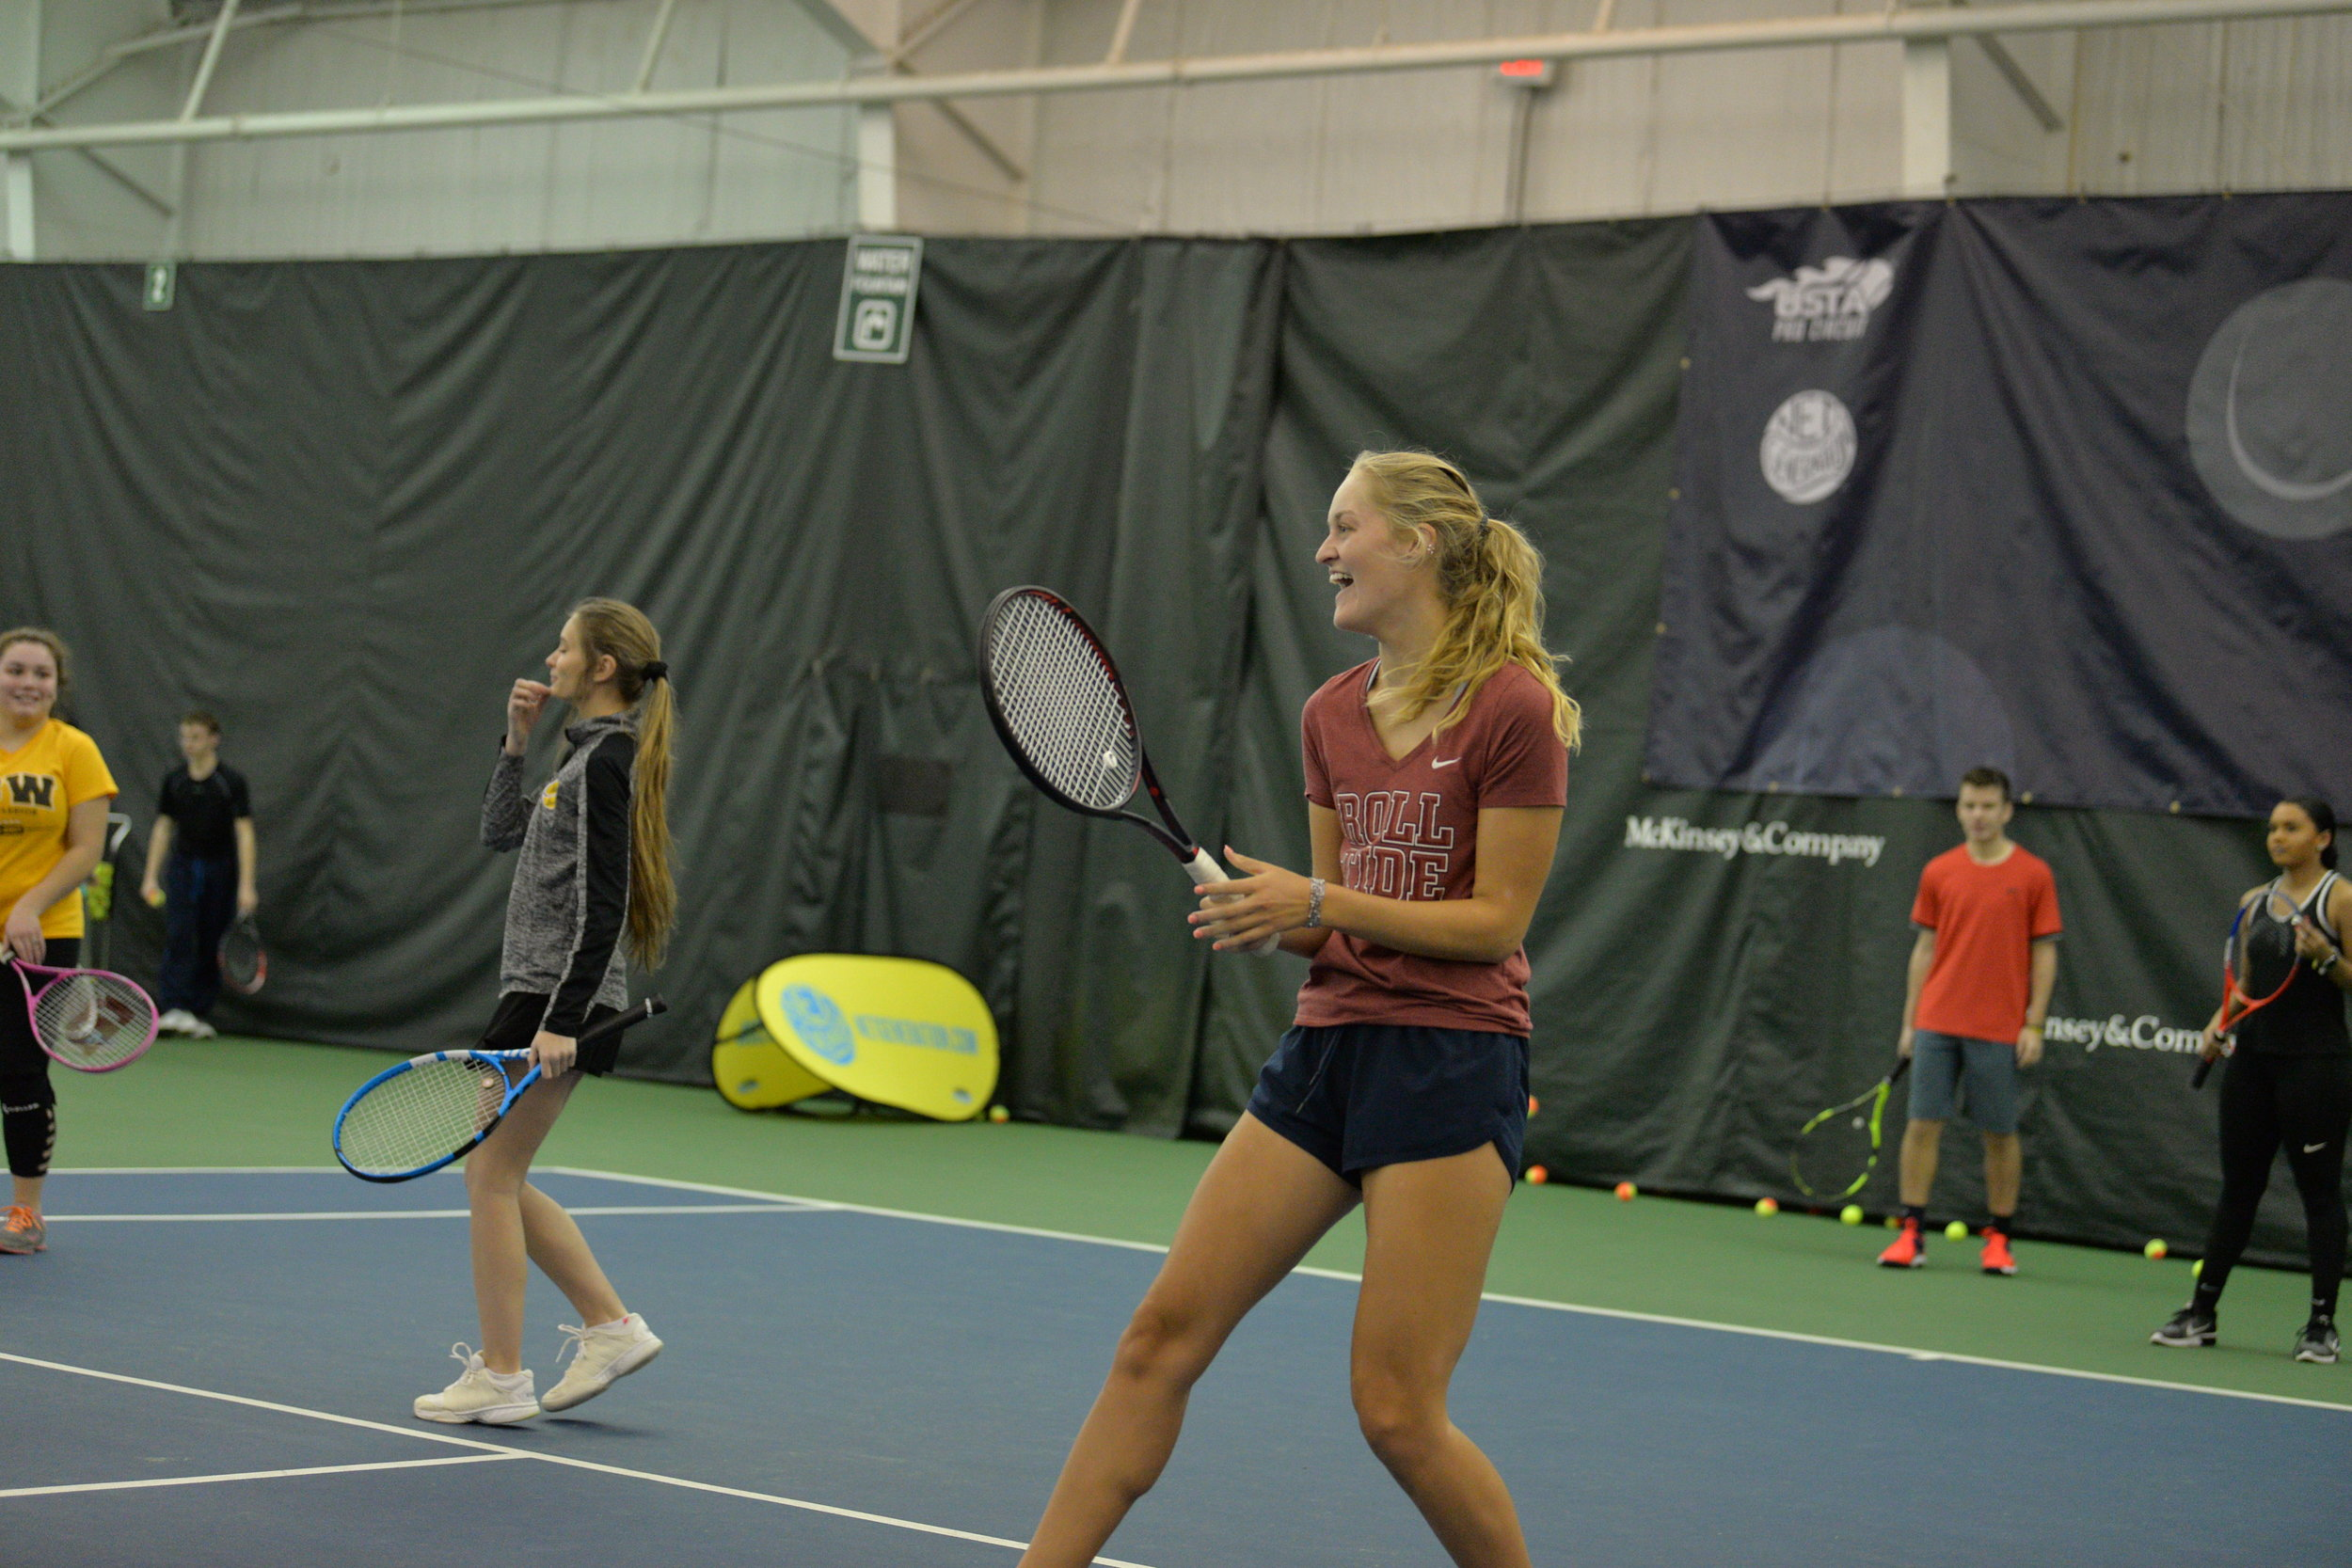 YOUNG ADULTS  Middle & high school programs  Programs for students who play recreationally and competitively - at any level!   YOUNG ADULT TENNIS    TOURNAMENT TRAINING